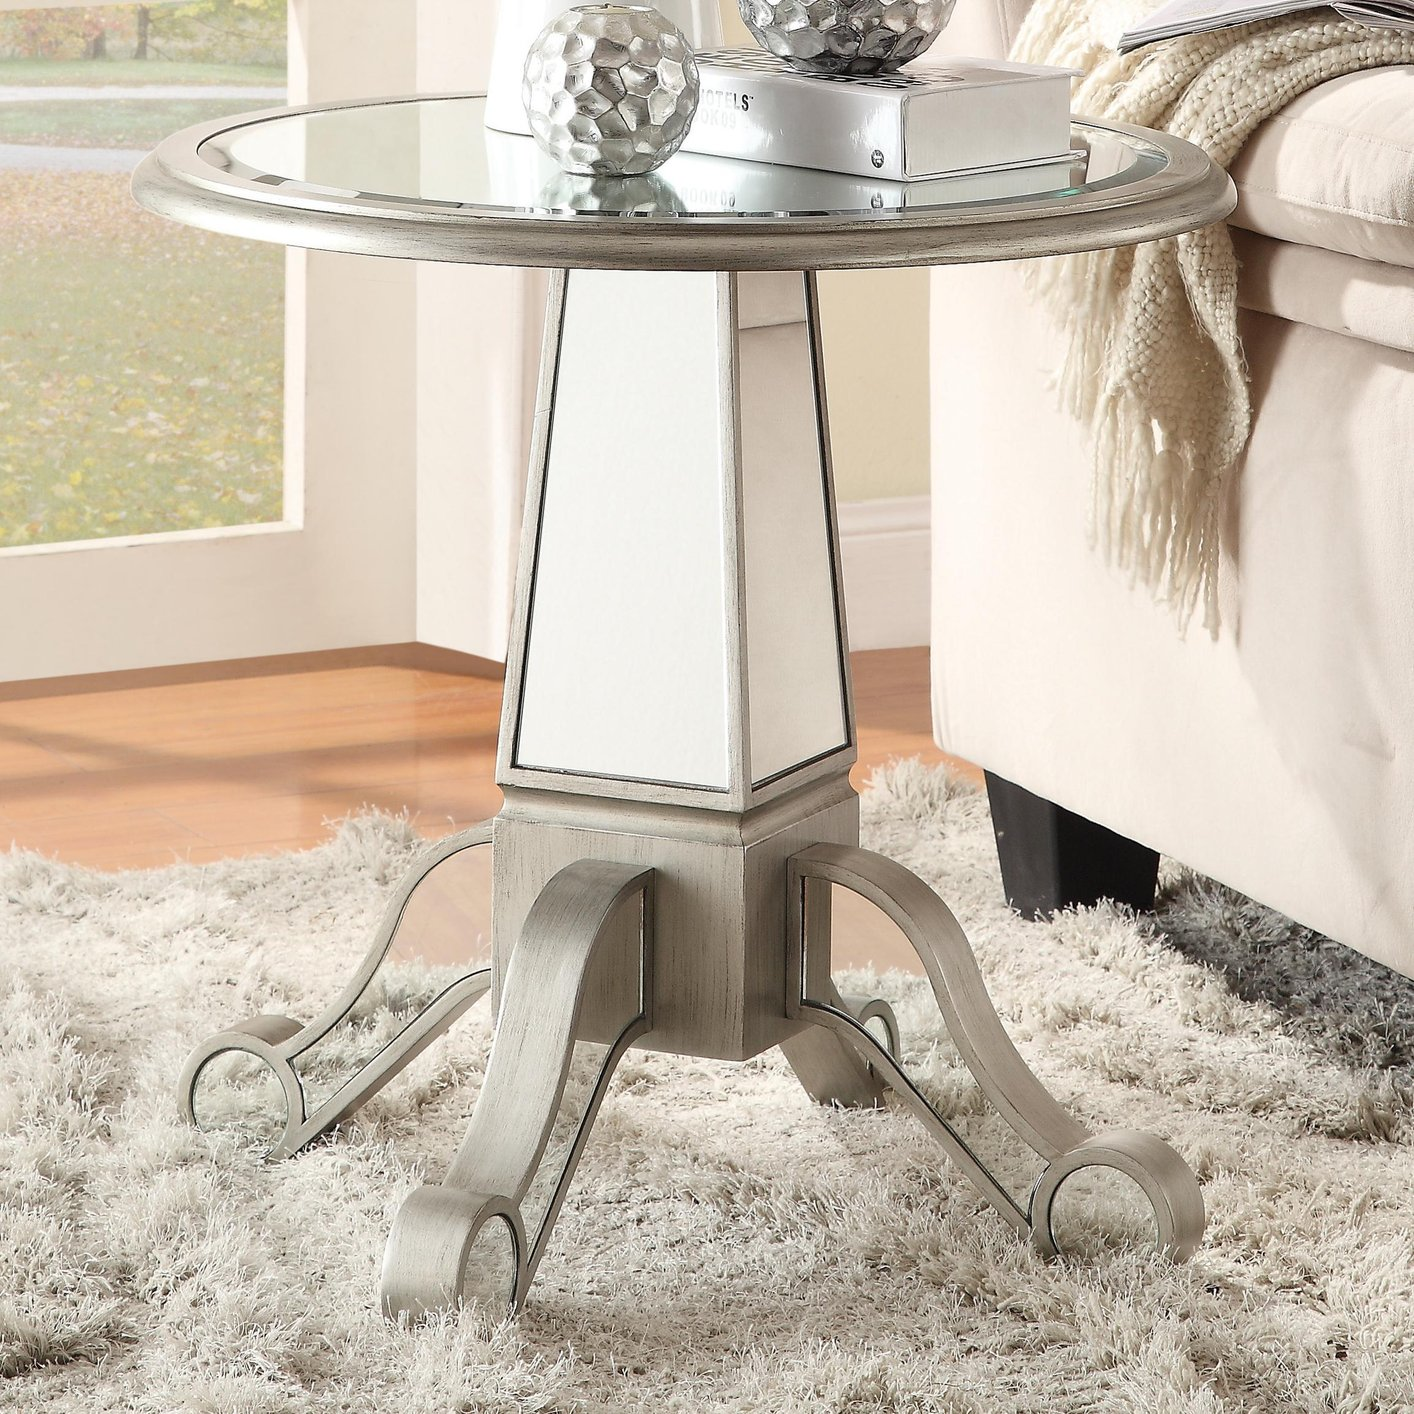 silver metal accent table steal sofa furniture los angeles glass round marble coffee target patio cushions pier dinnerware tables living room ideas outdoor folding chairs large